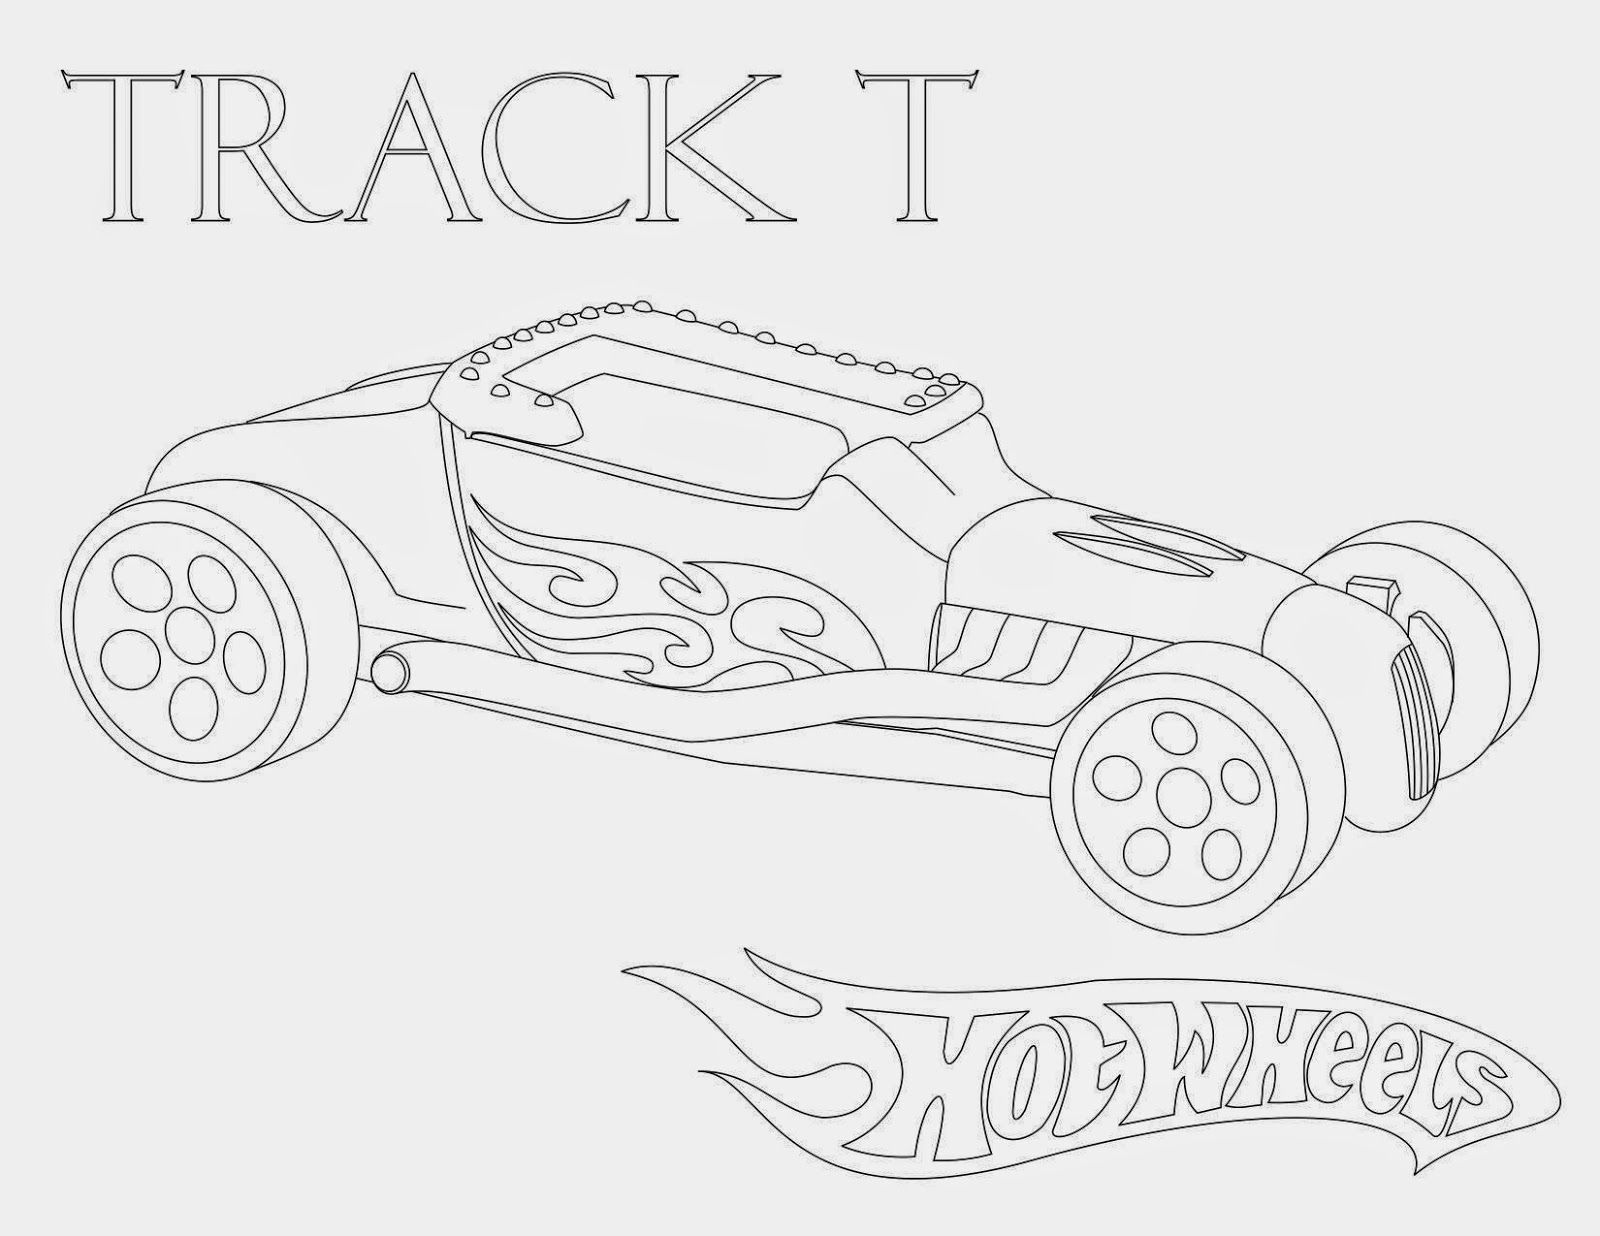 Hot Wheels Coloring Pages Set 3 A huge collection of Hot Wheels